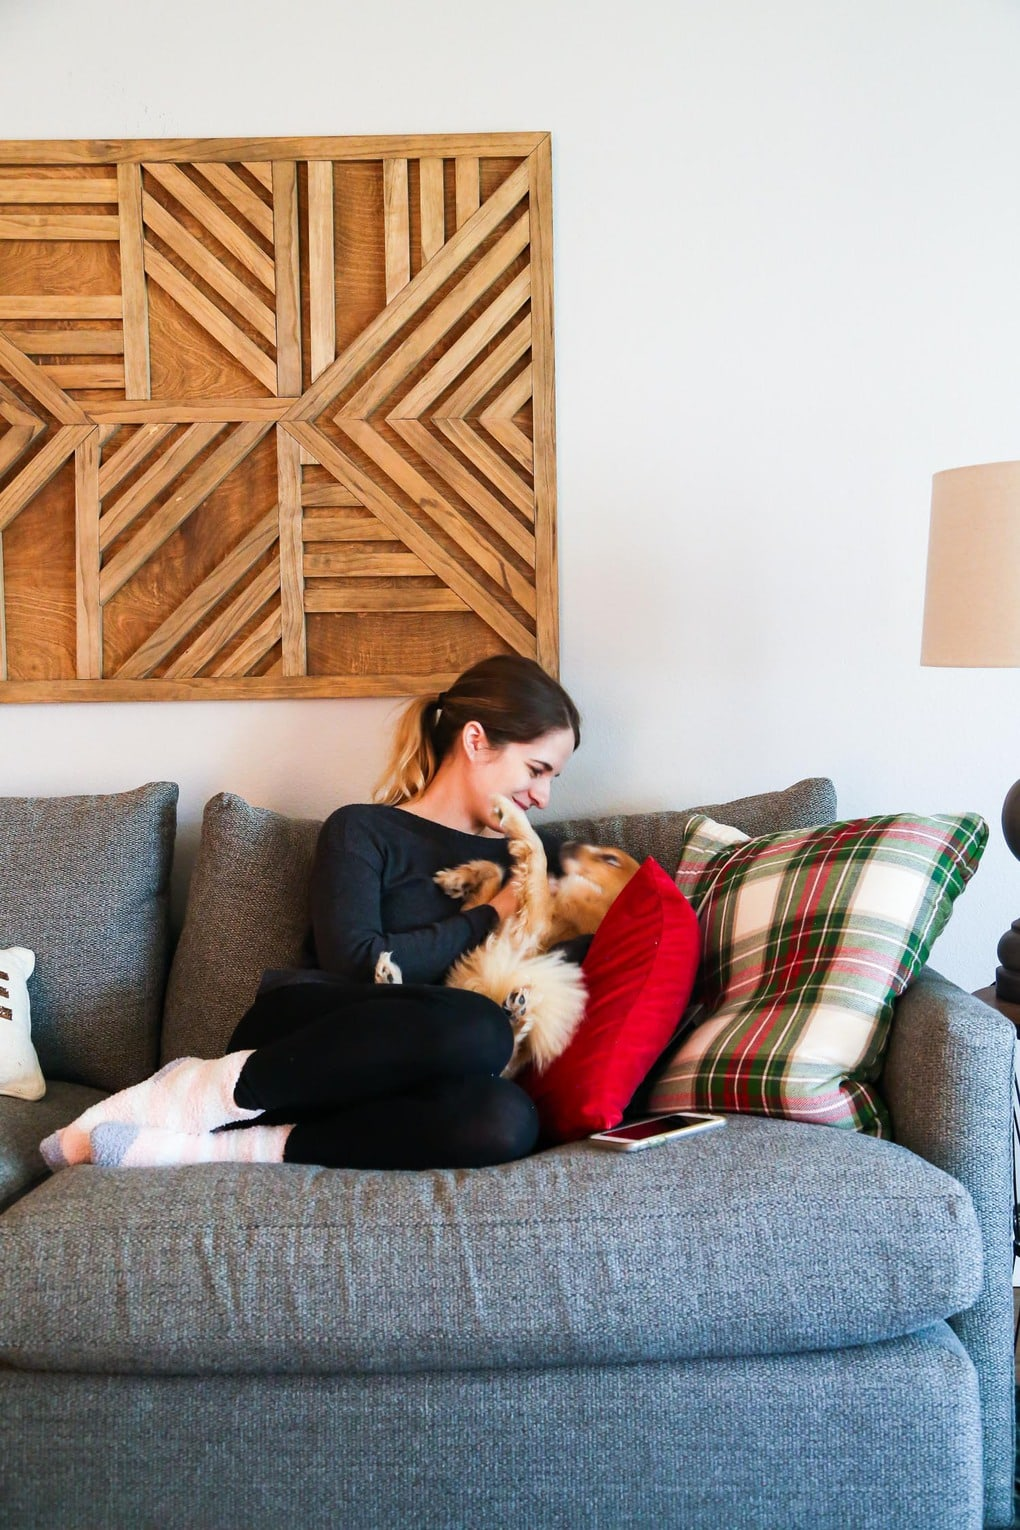 Woman on couch with dog - tips for moving and selling a home